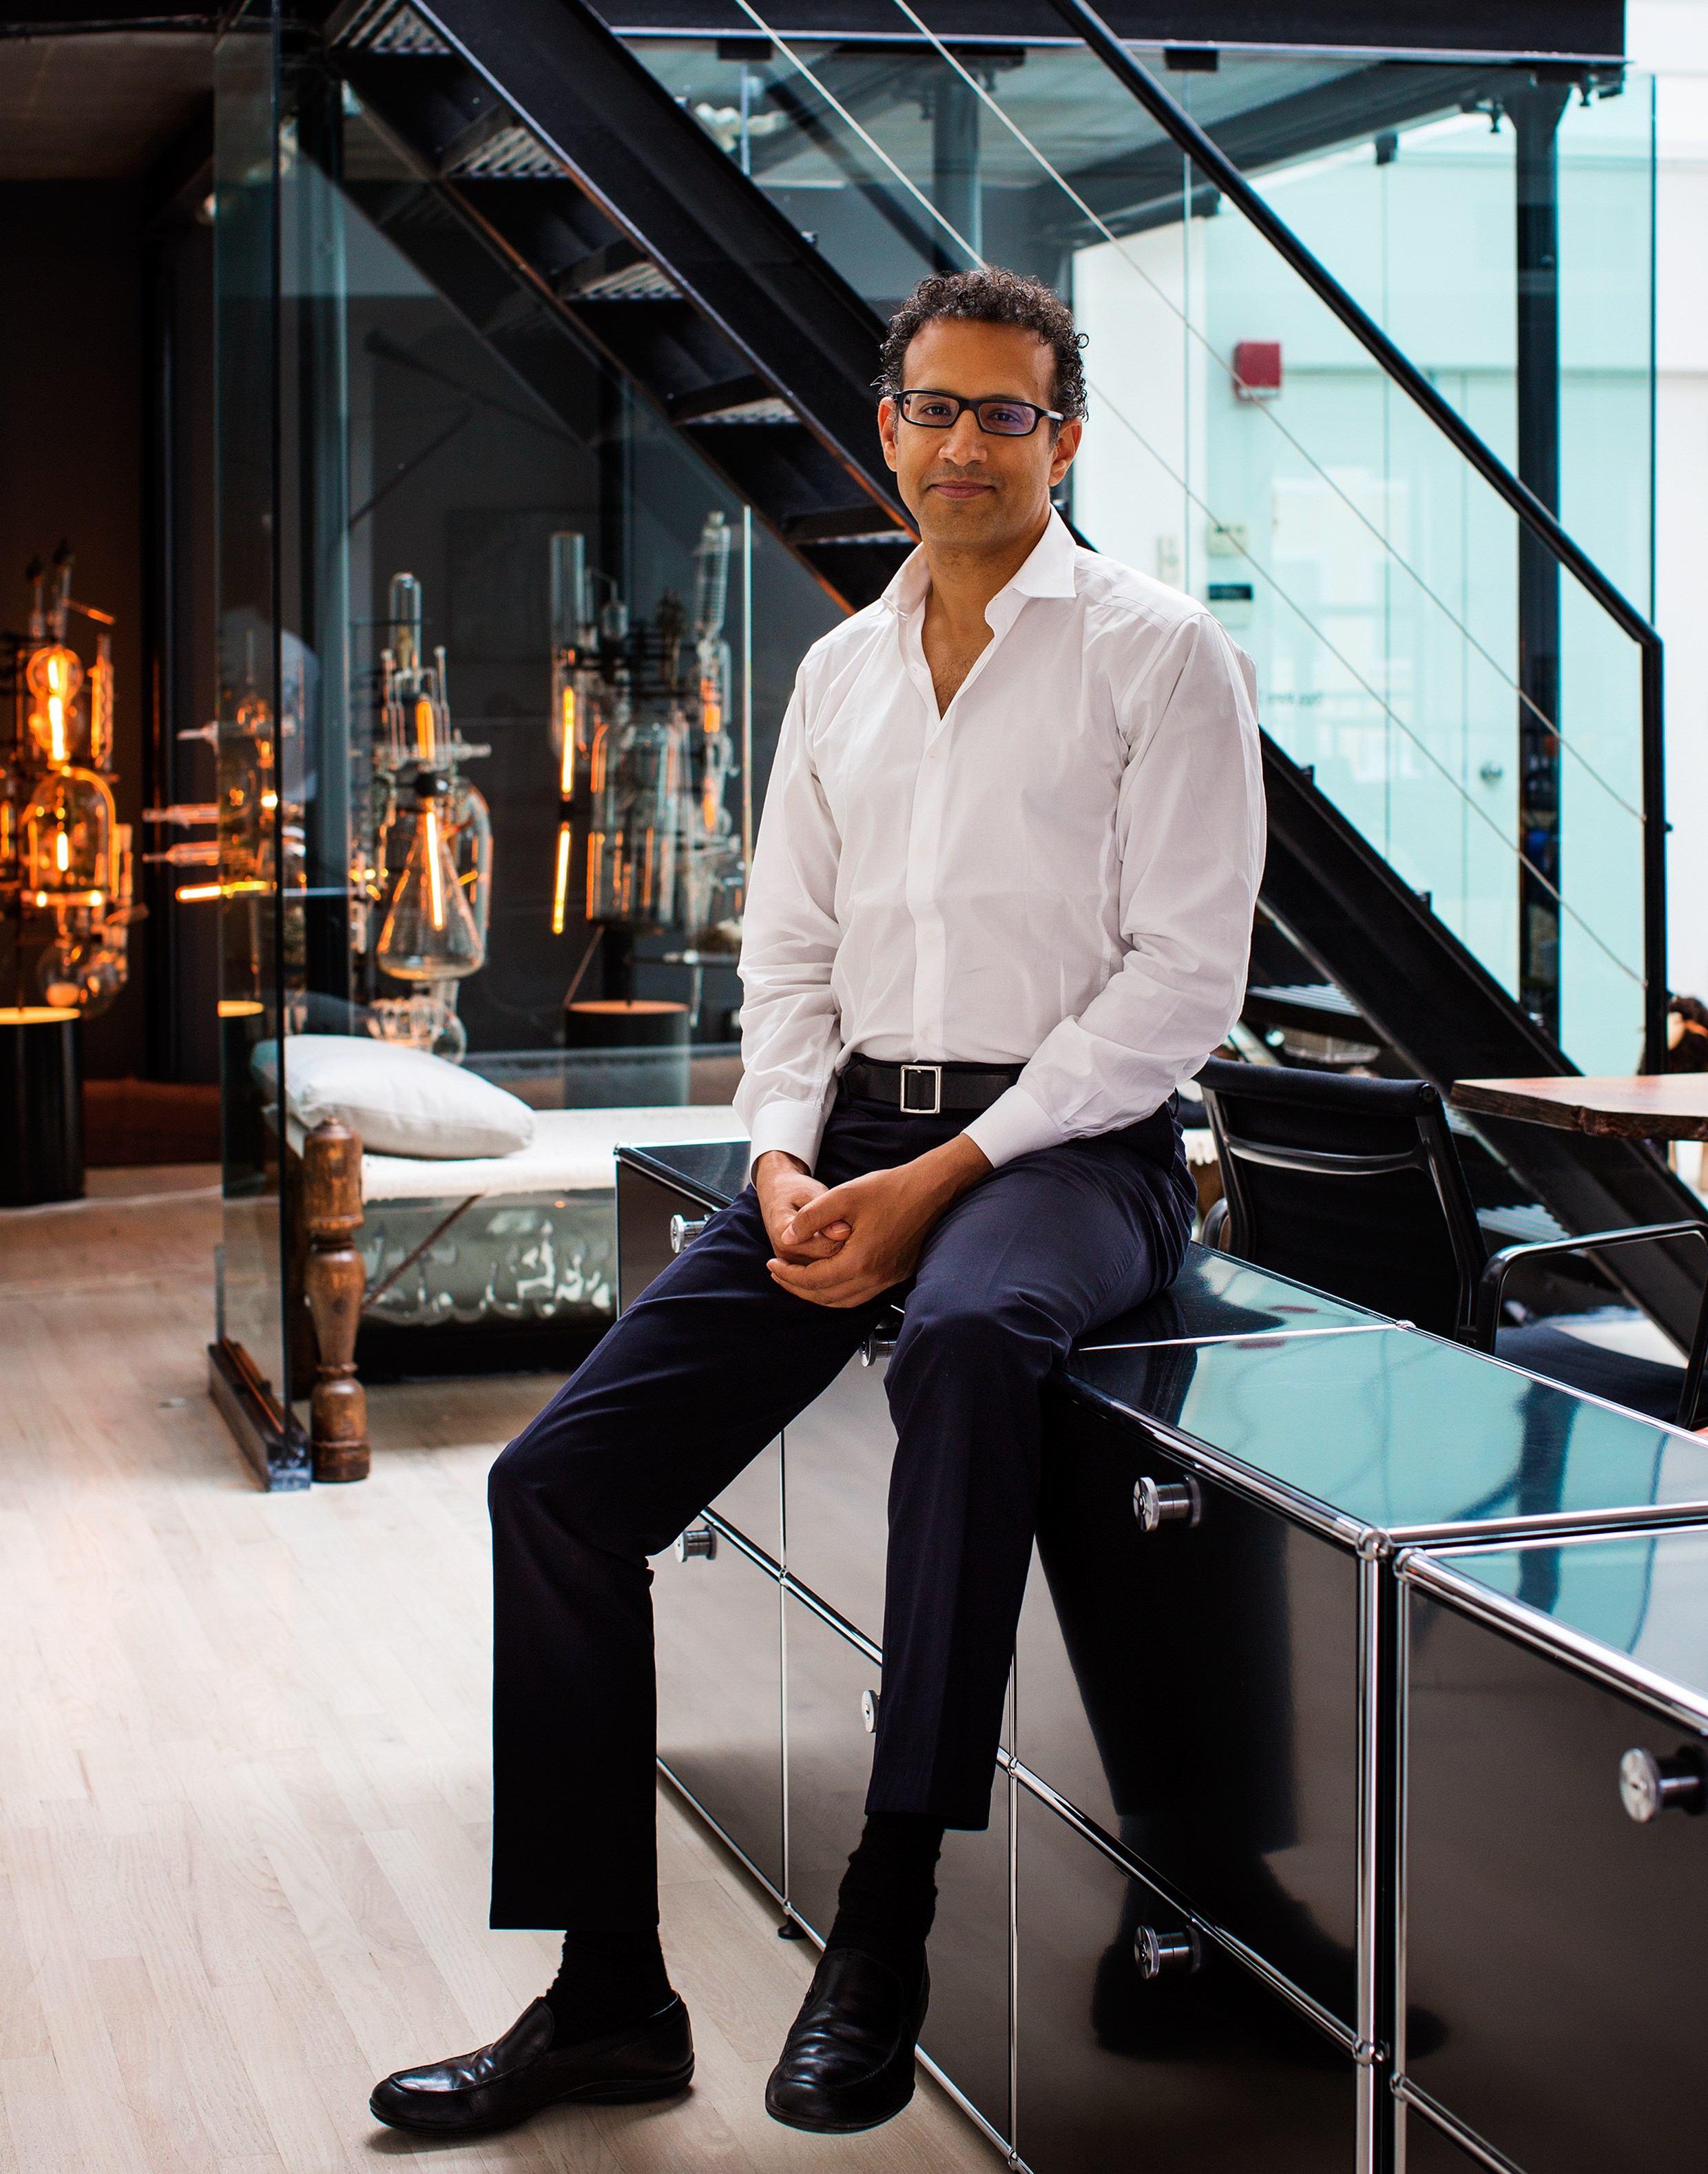 designer Ghiora Aharoni with his modern black USM Haller furniture